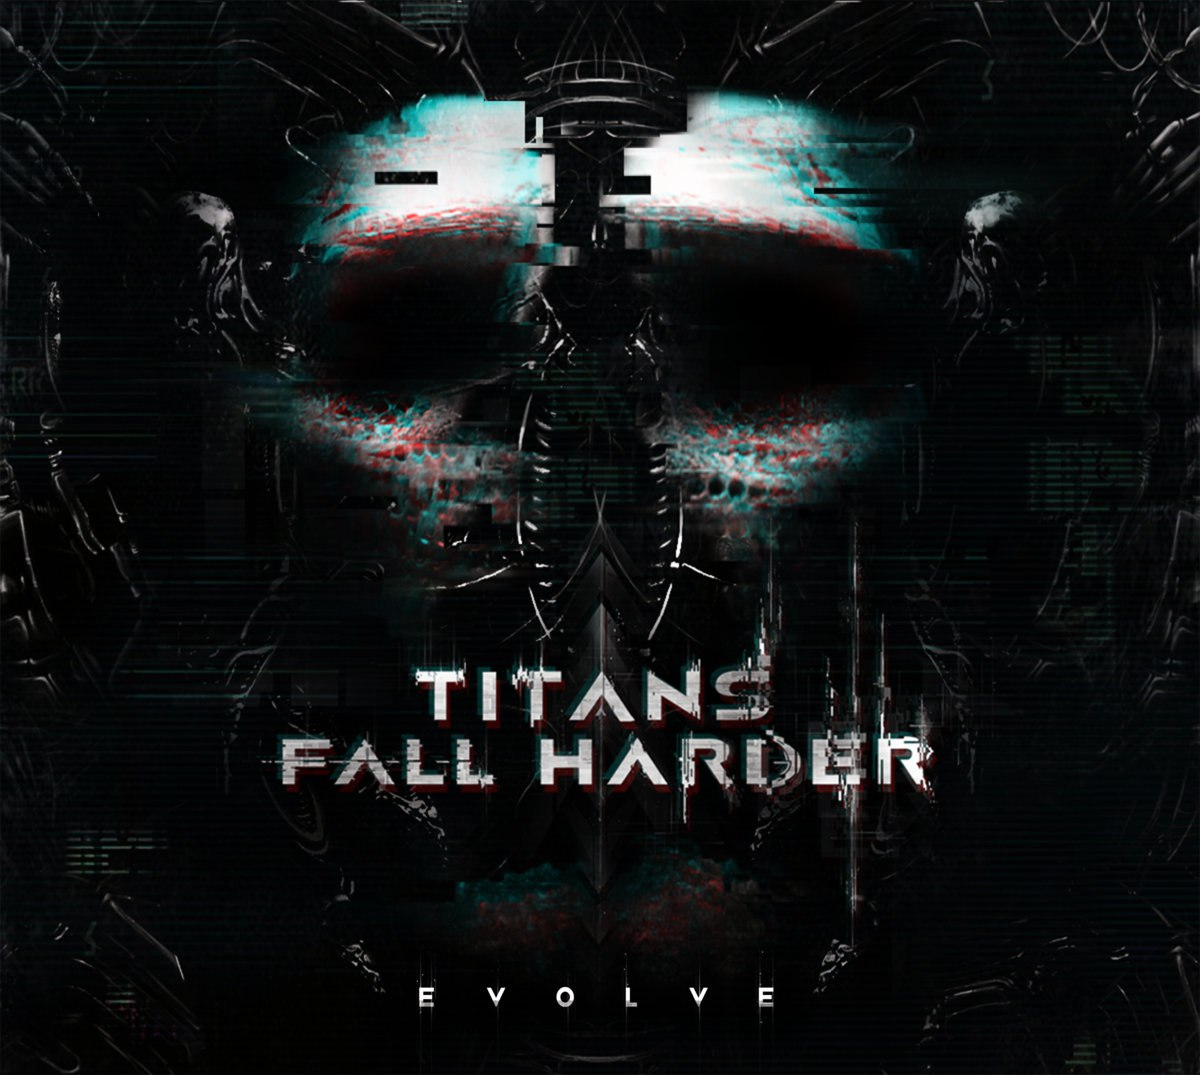 Titans Fall Harder - Evolve [EP] (2017)